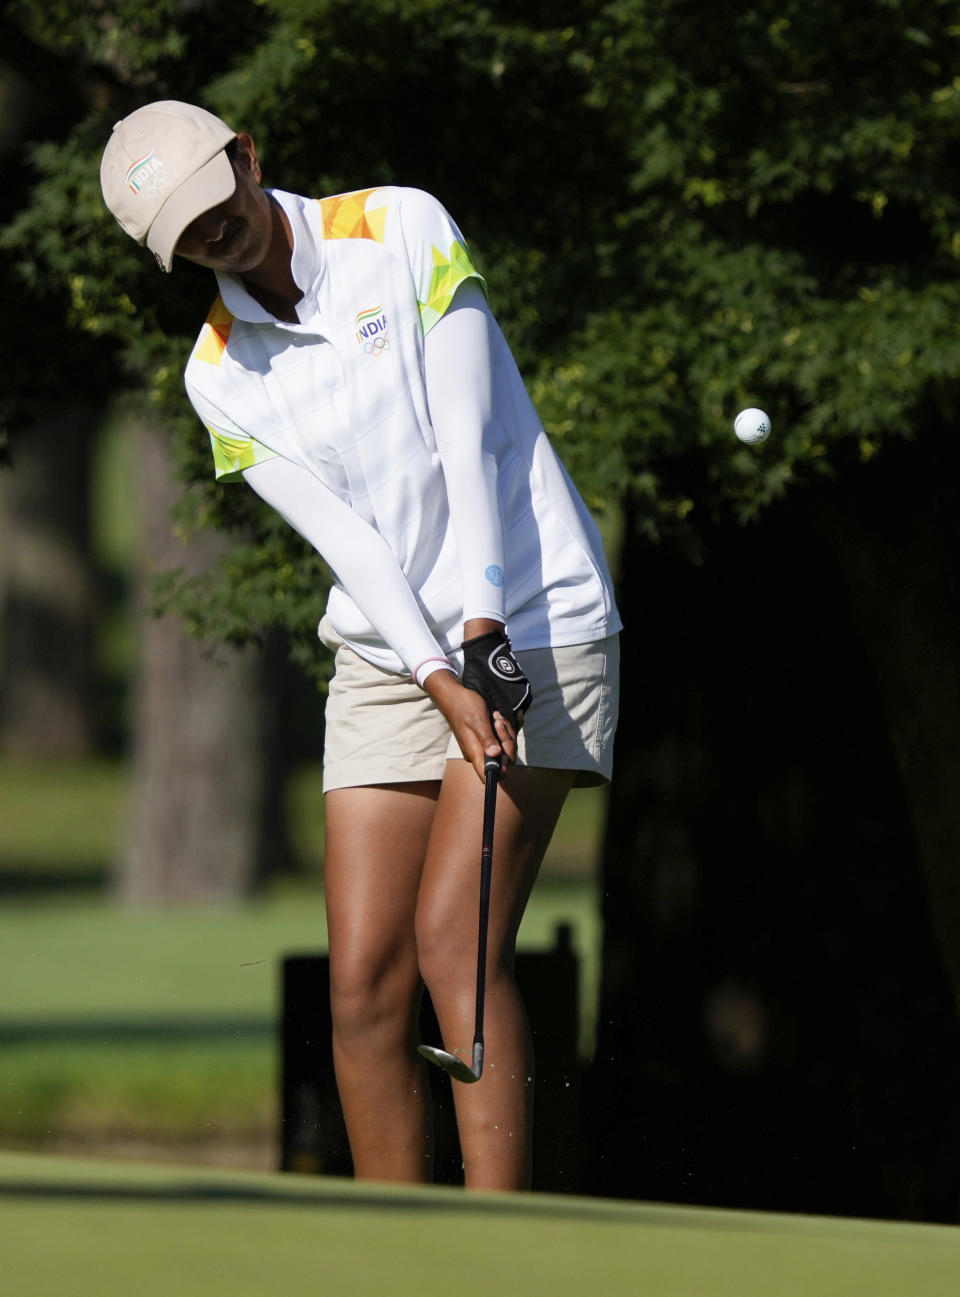 Aditi Ashok, of India, chips onto the second green during the second round of the women's golf event at the 2020 Summer Olympics, Thursday, Aug. 5, 2021, at the Kasumigaseki Country Club in Kawagoe, Japan. (AP Photo/Andy Wong)